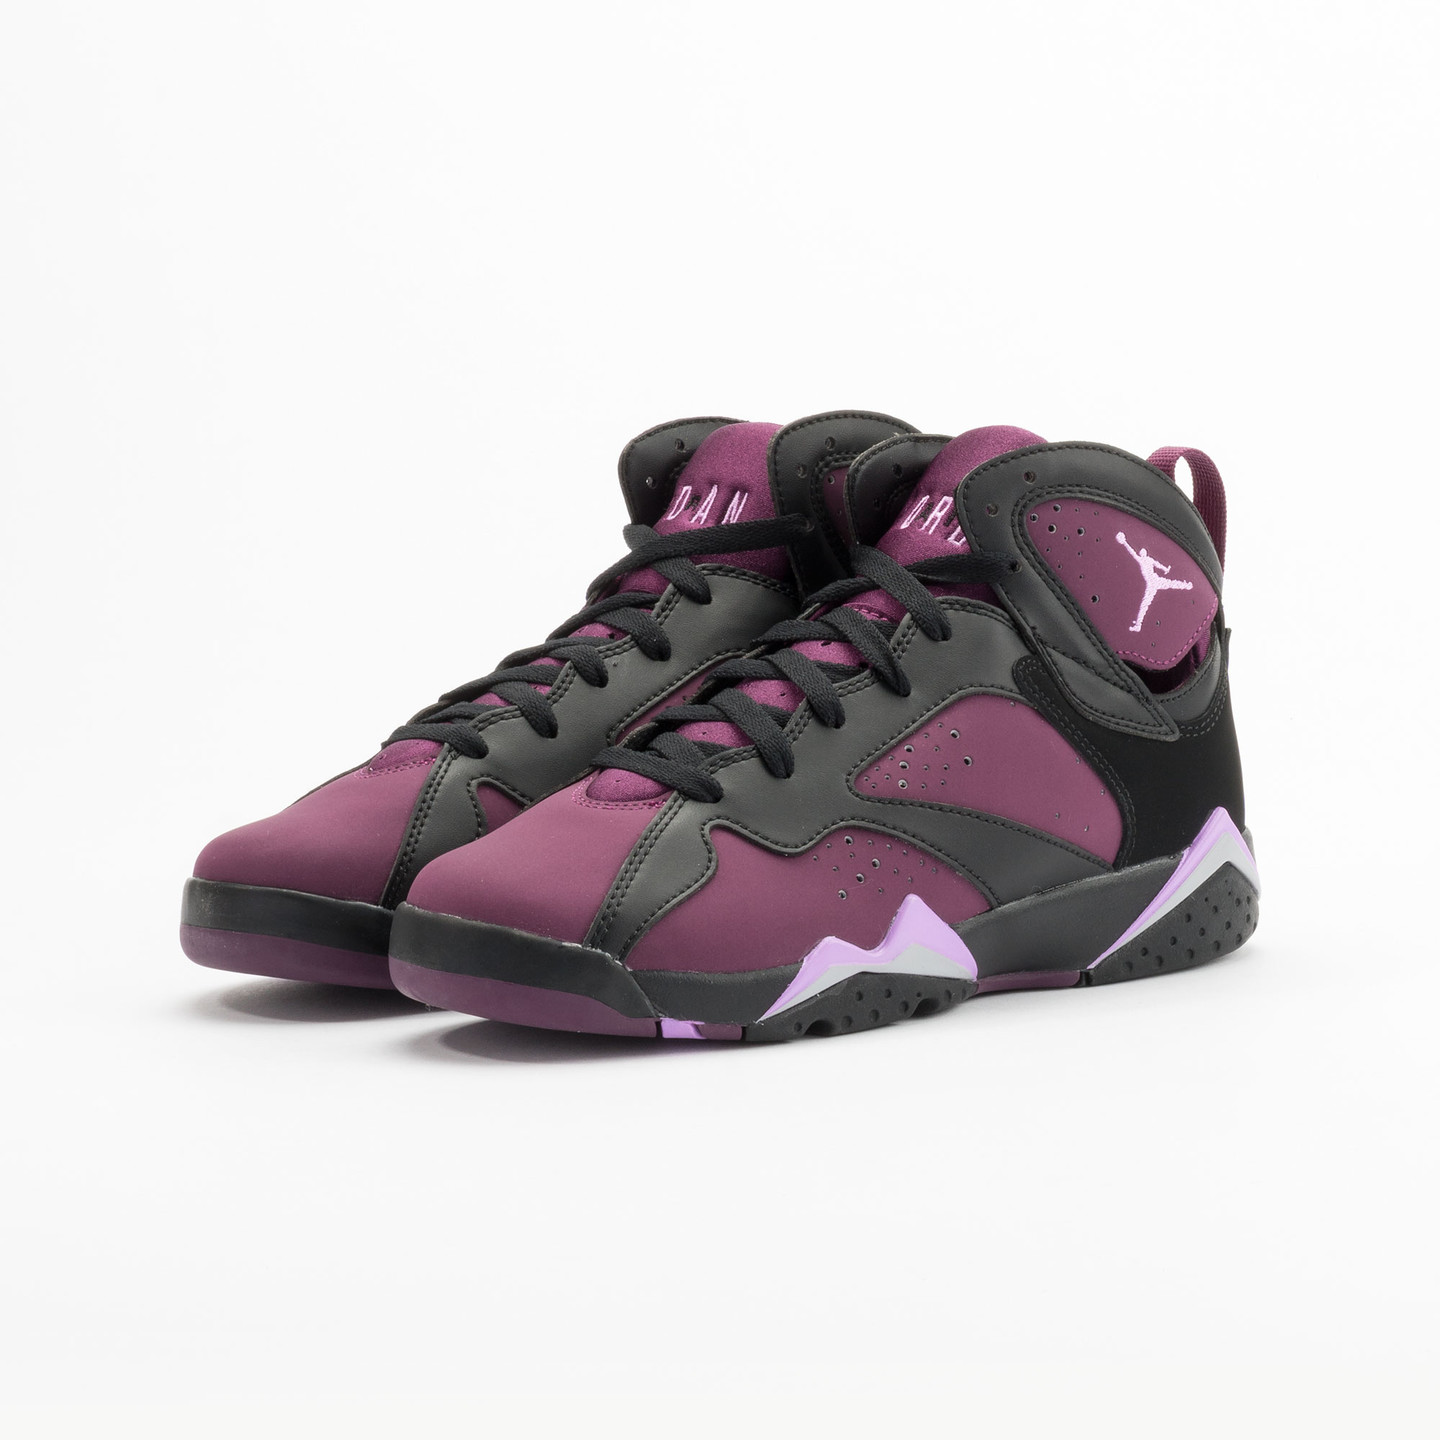 Jordan Air Jordan 7 Retro GG Mulberry / Fuchsia / Black 442960-009-38